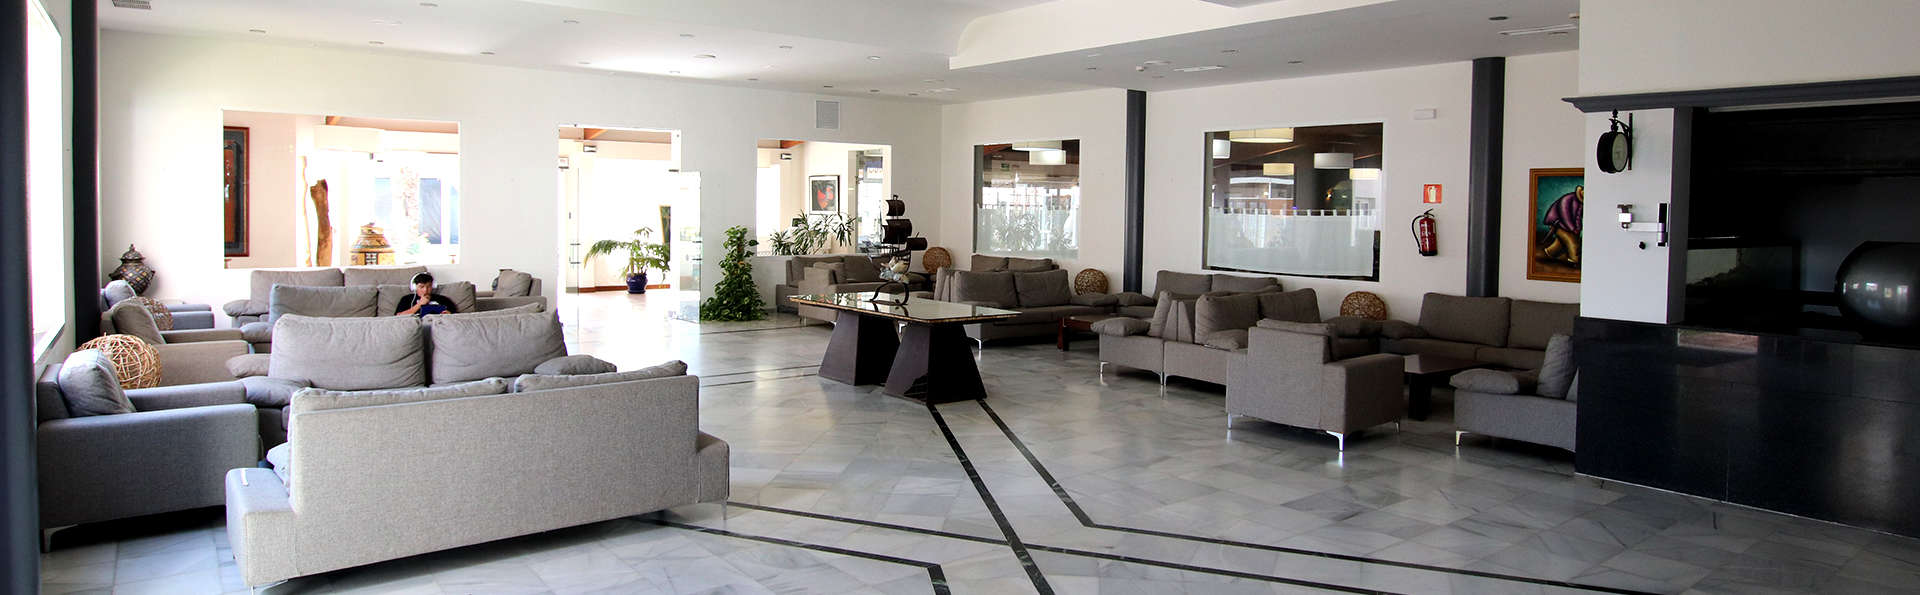 Ohtels Carabela - Edit_Hall.jpg